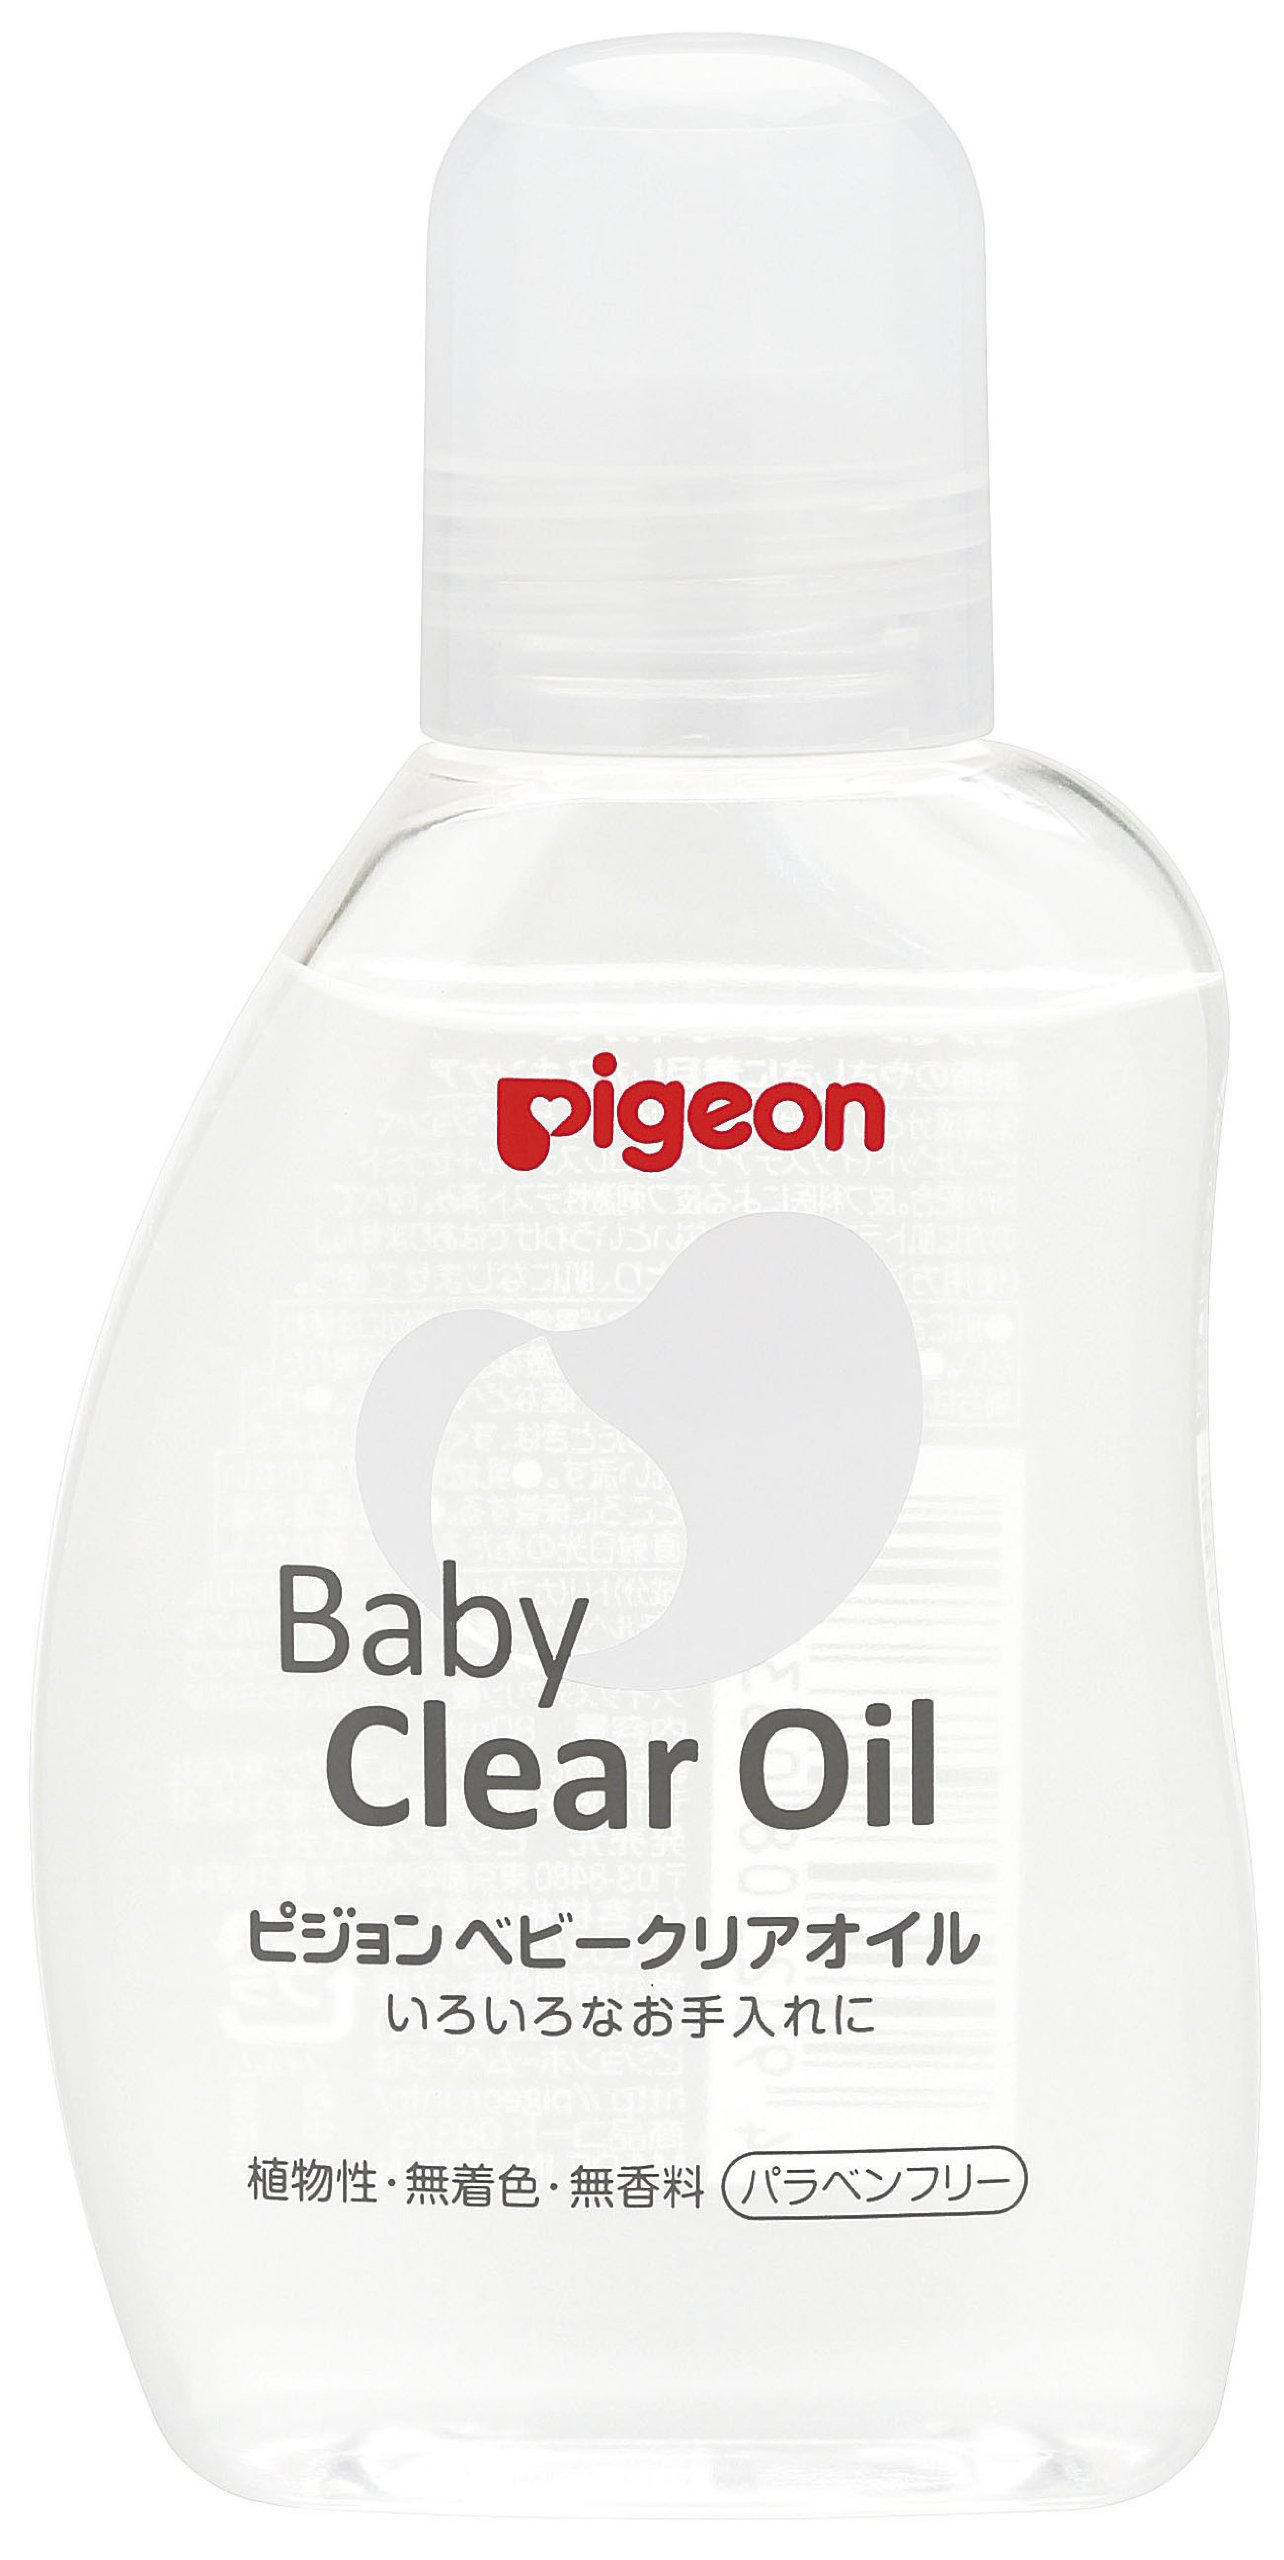 Pigeon Baby clear oil 80ml